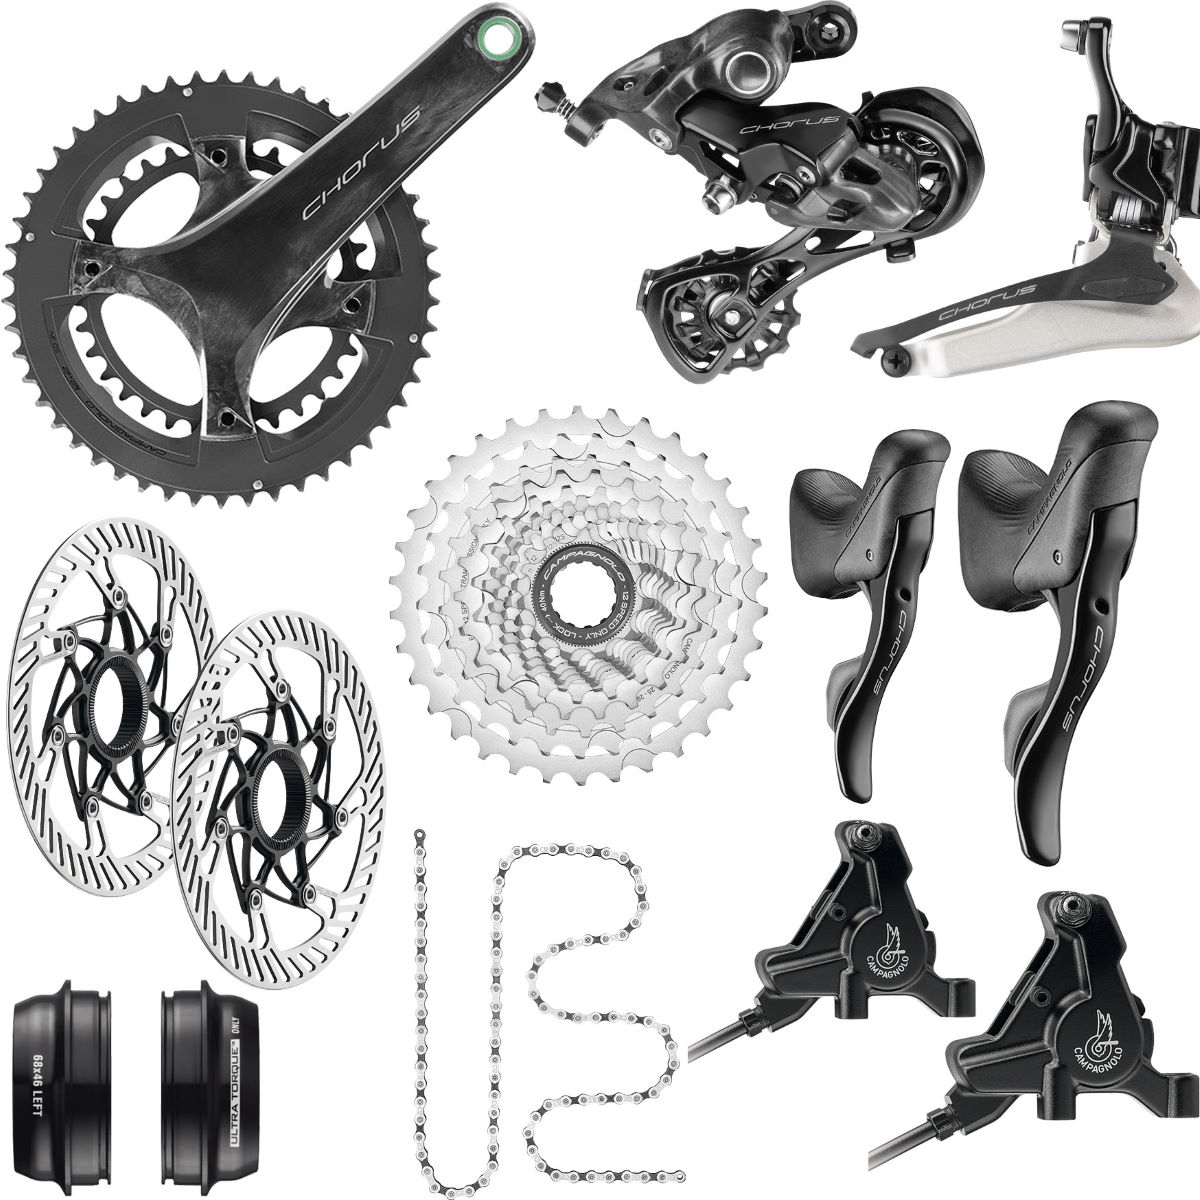 Campagnolo Campagnolo Chorus 12 Speed Disc Groupset   Groupsets